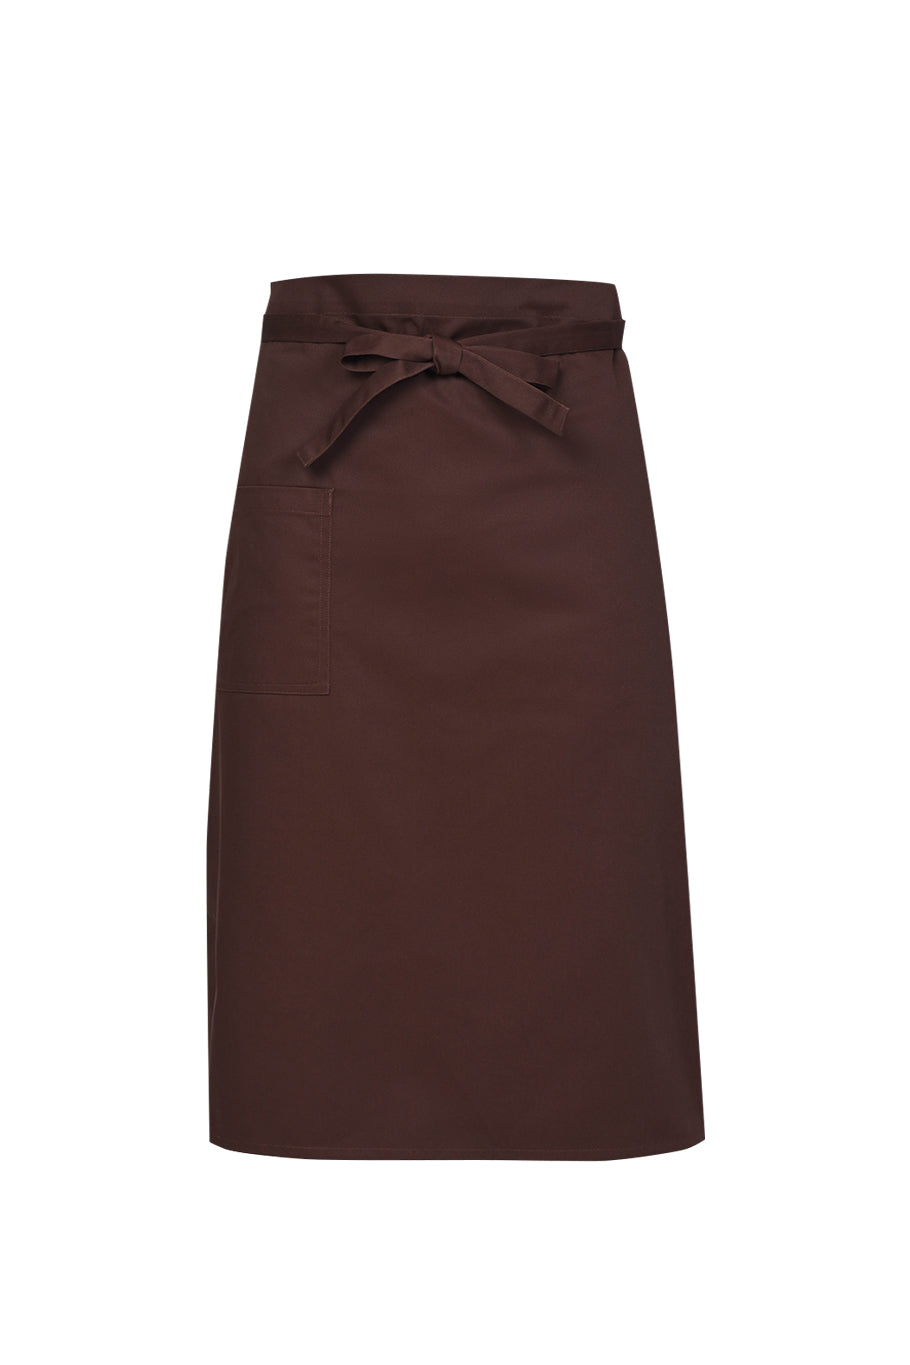 brown chef apron